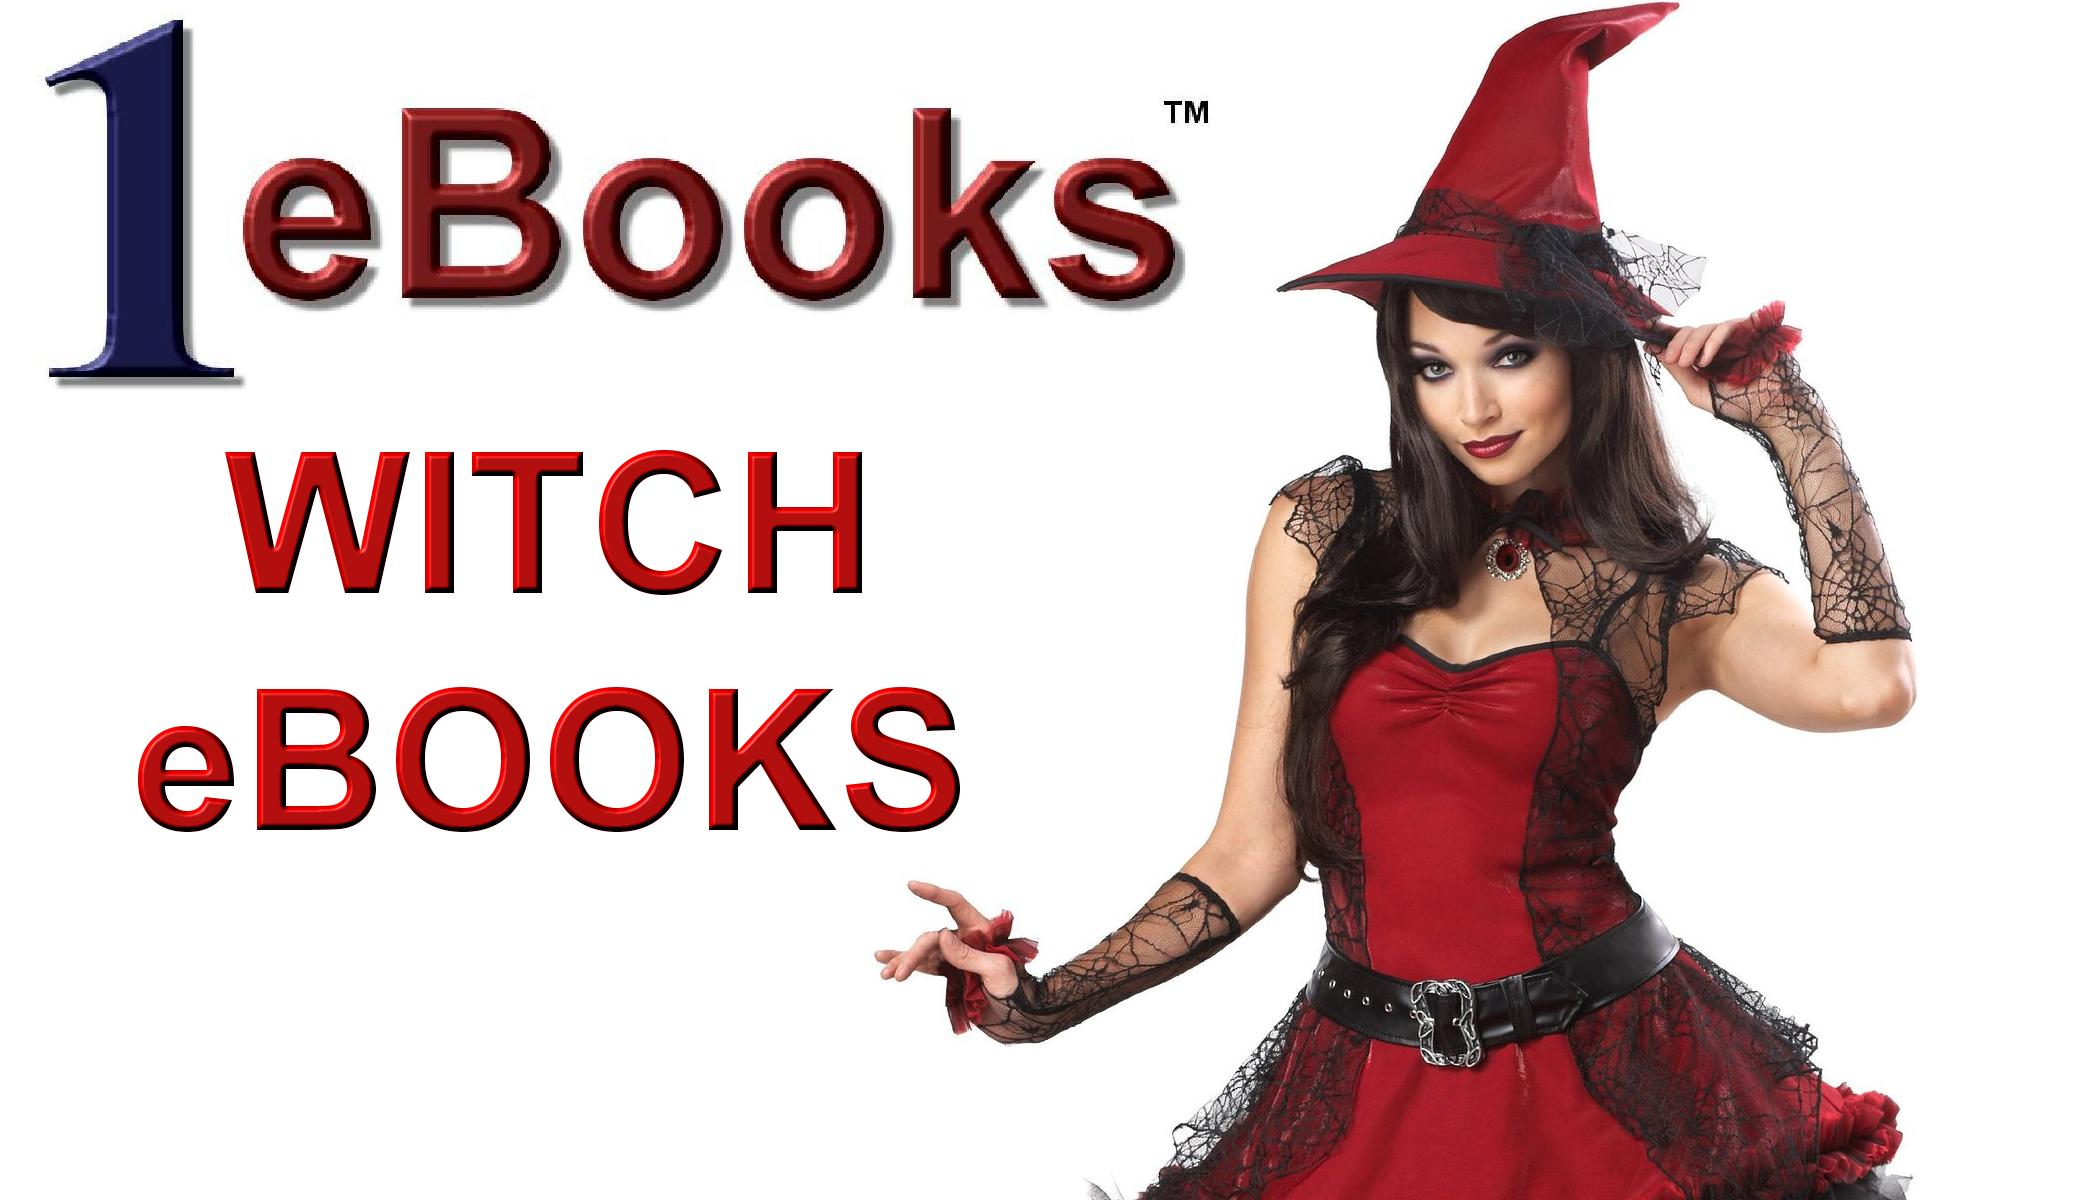 Witch eBooks